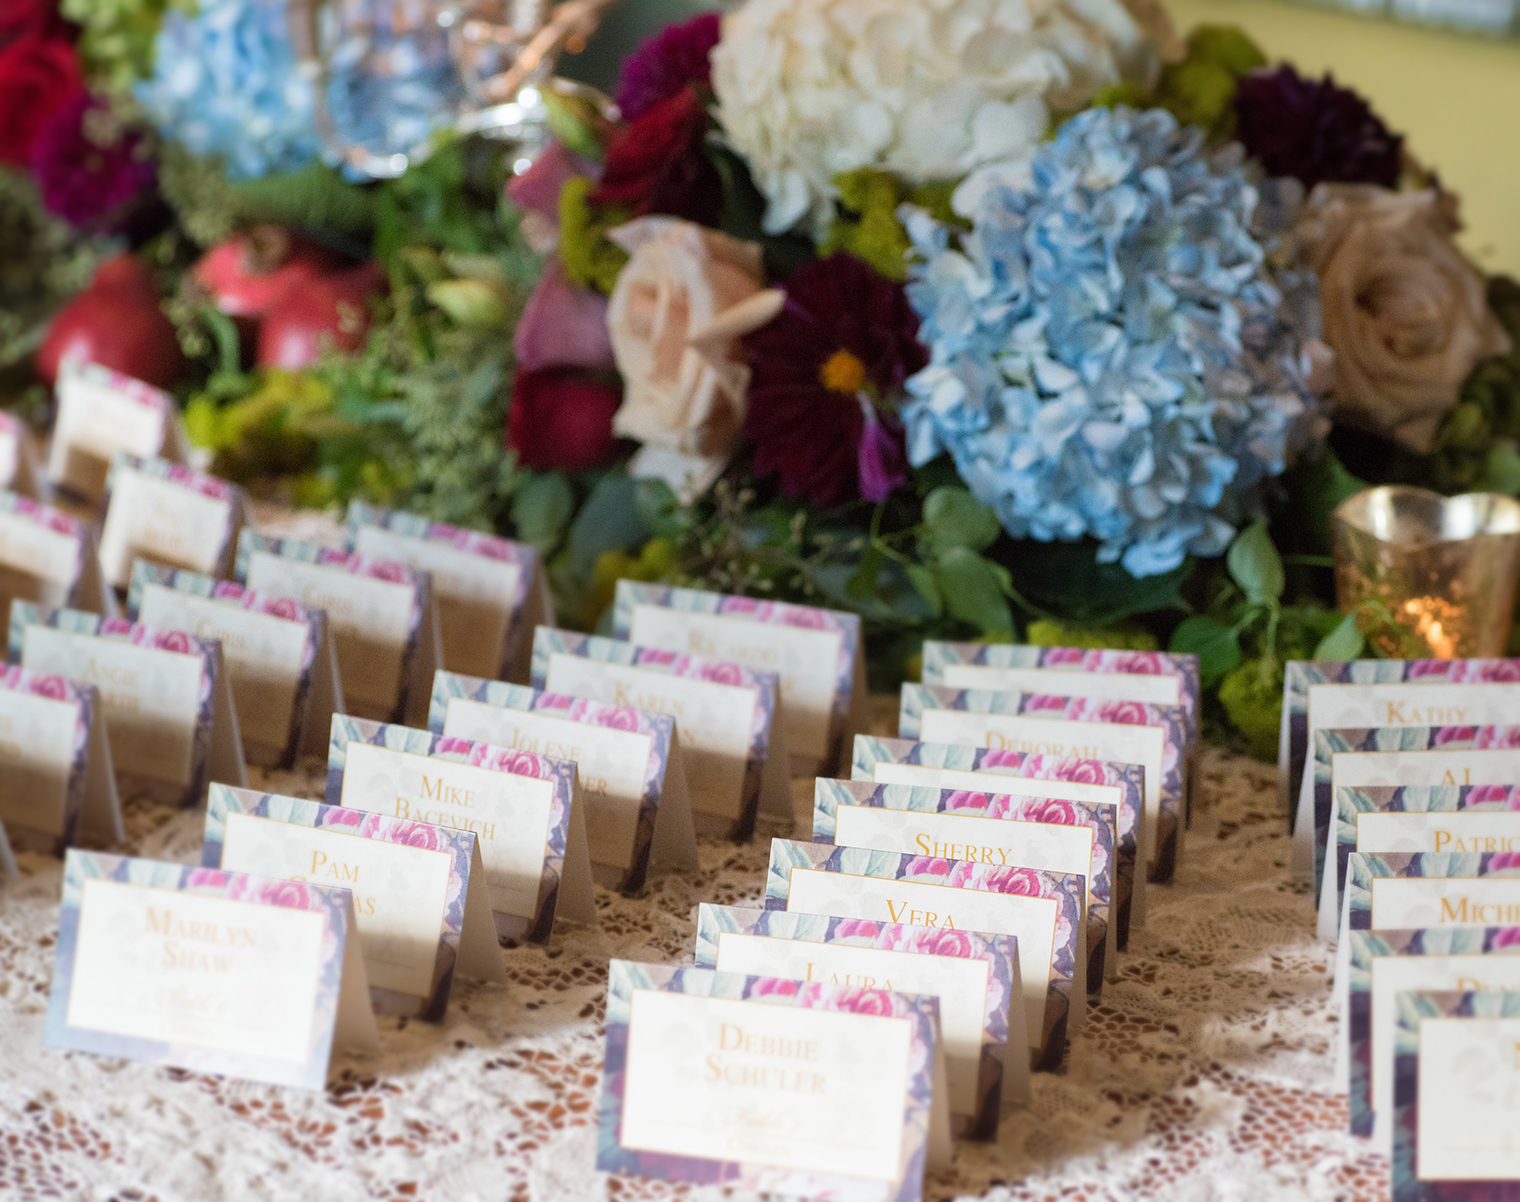 event-design-place cards-flowers-shabby-chic.jpg